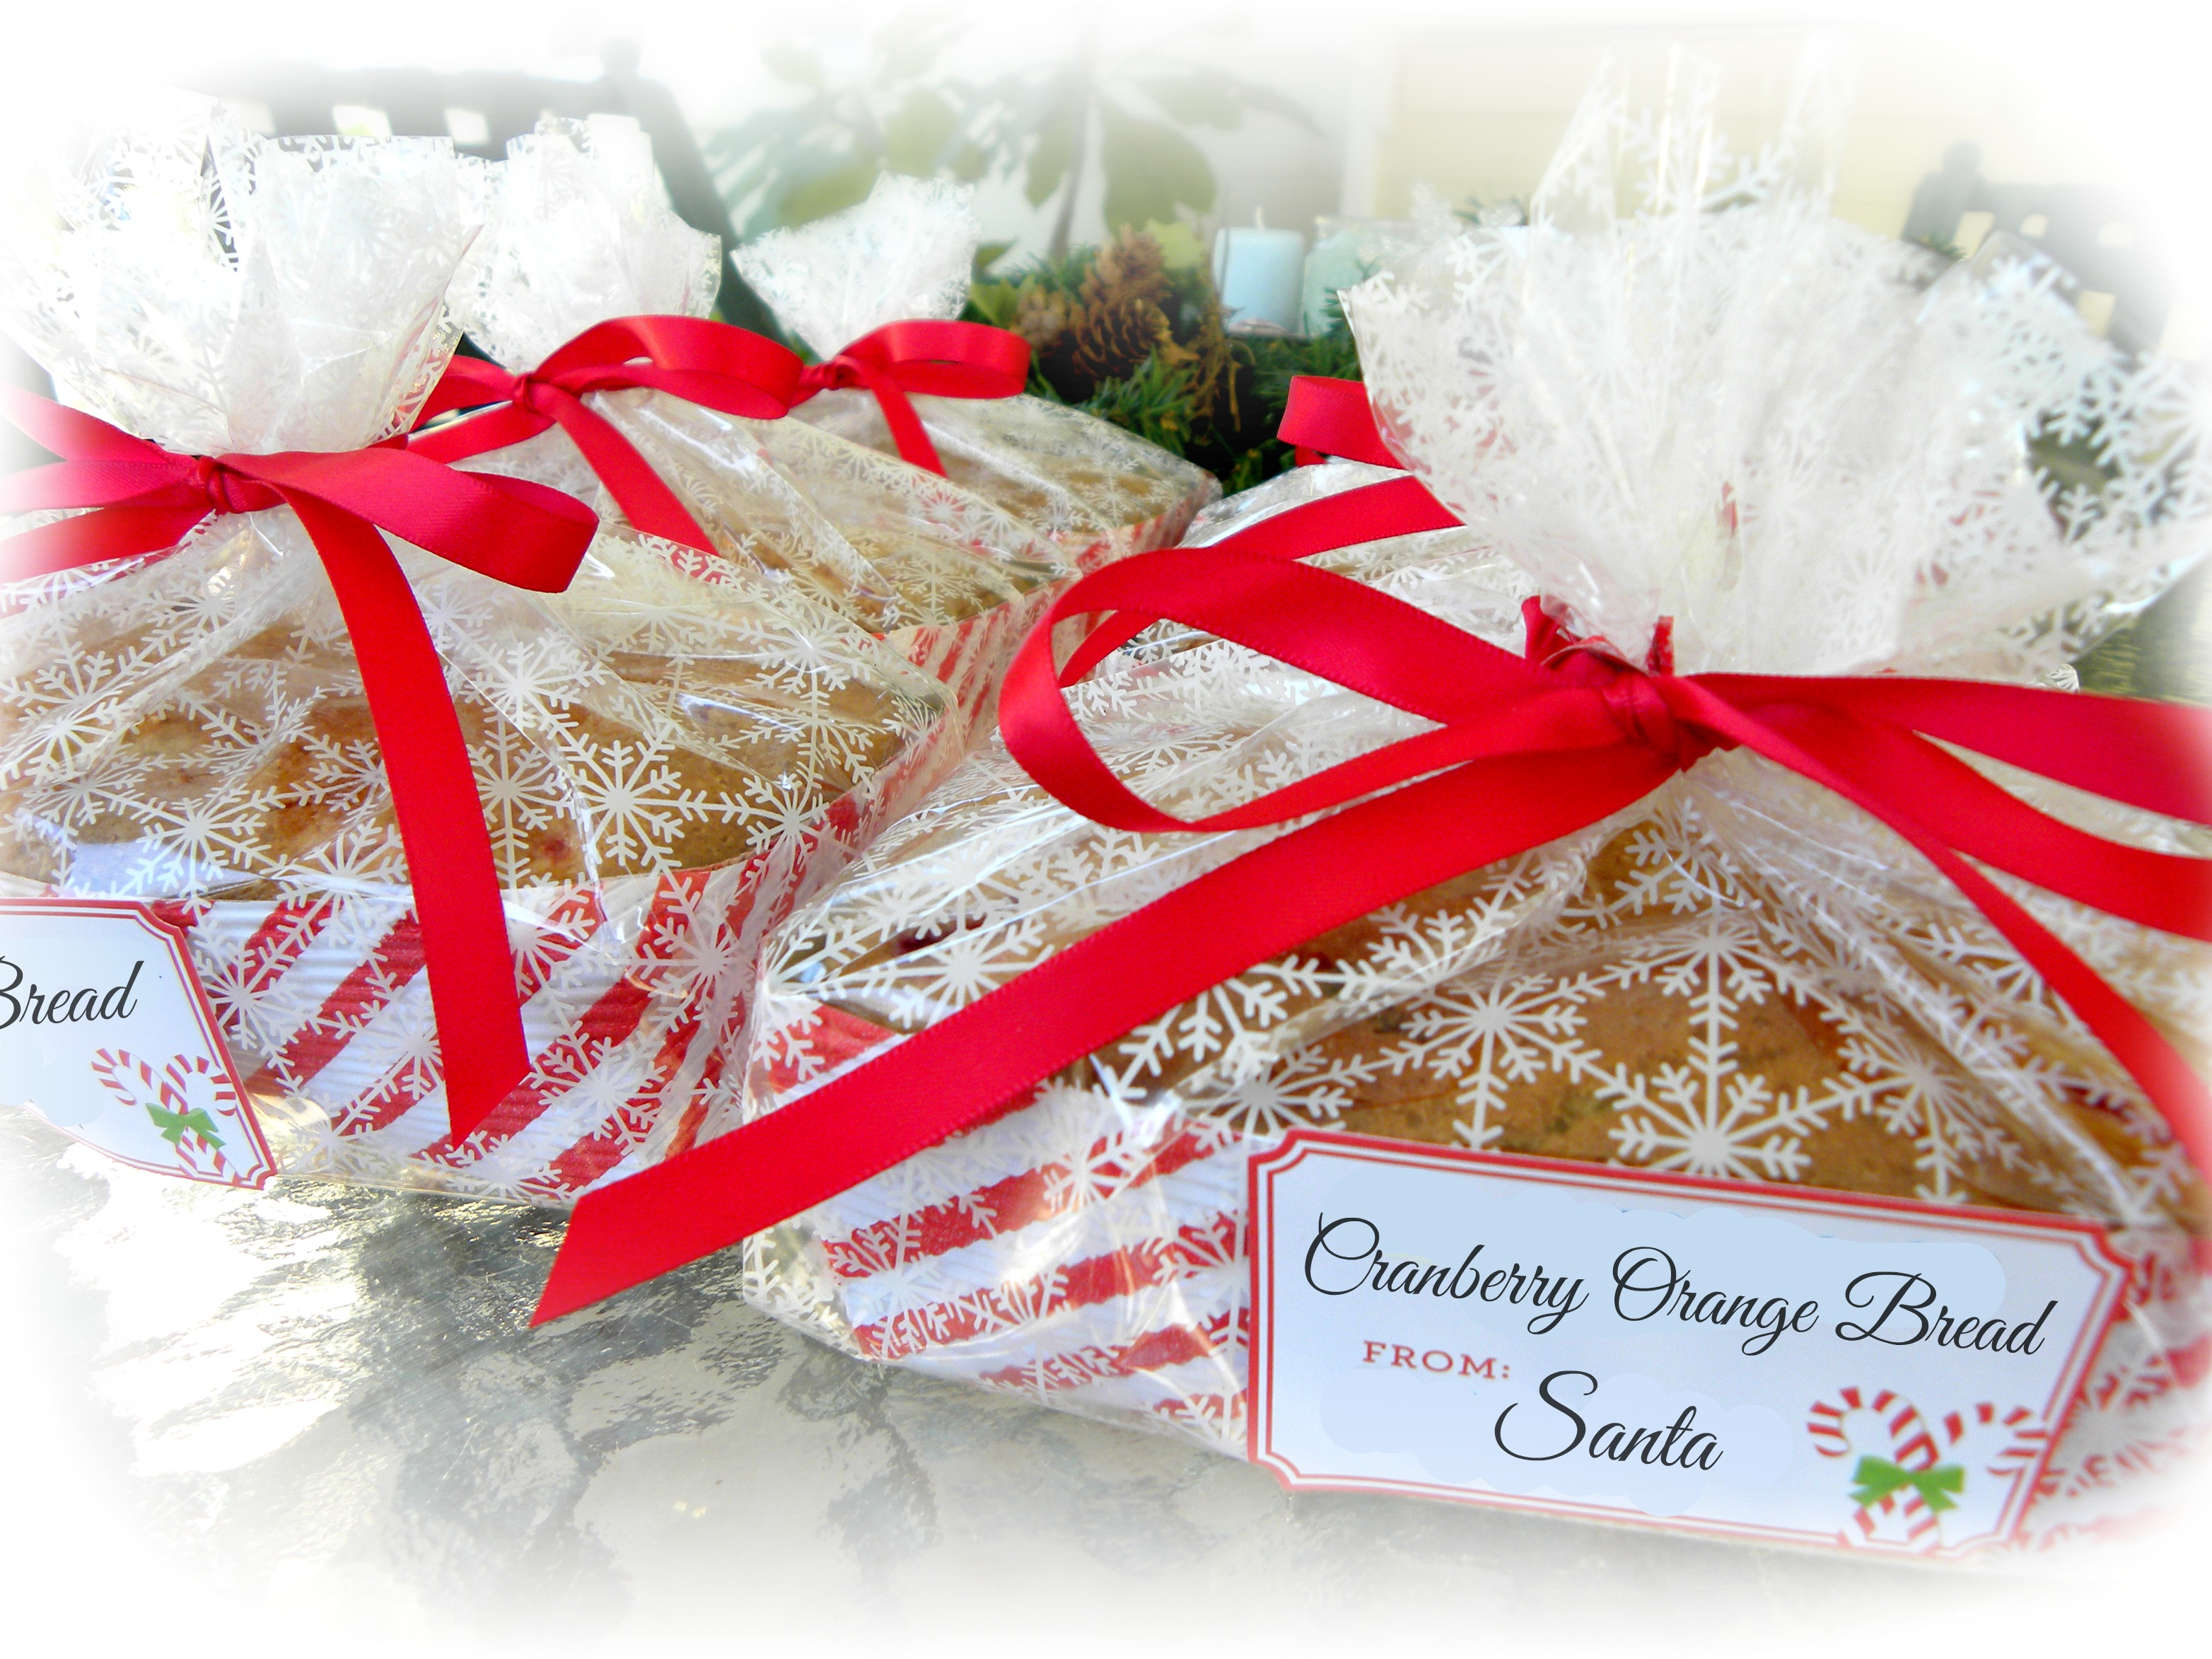 Great gifting: Easy Cranberry Orange Quick Bread. My friends and relatives insist I make this for them each year!